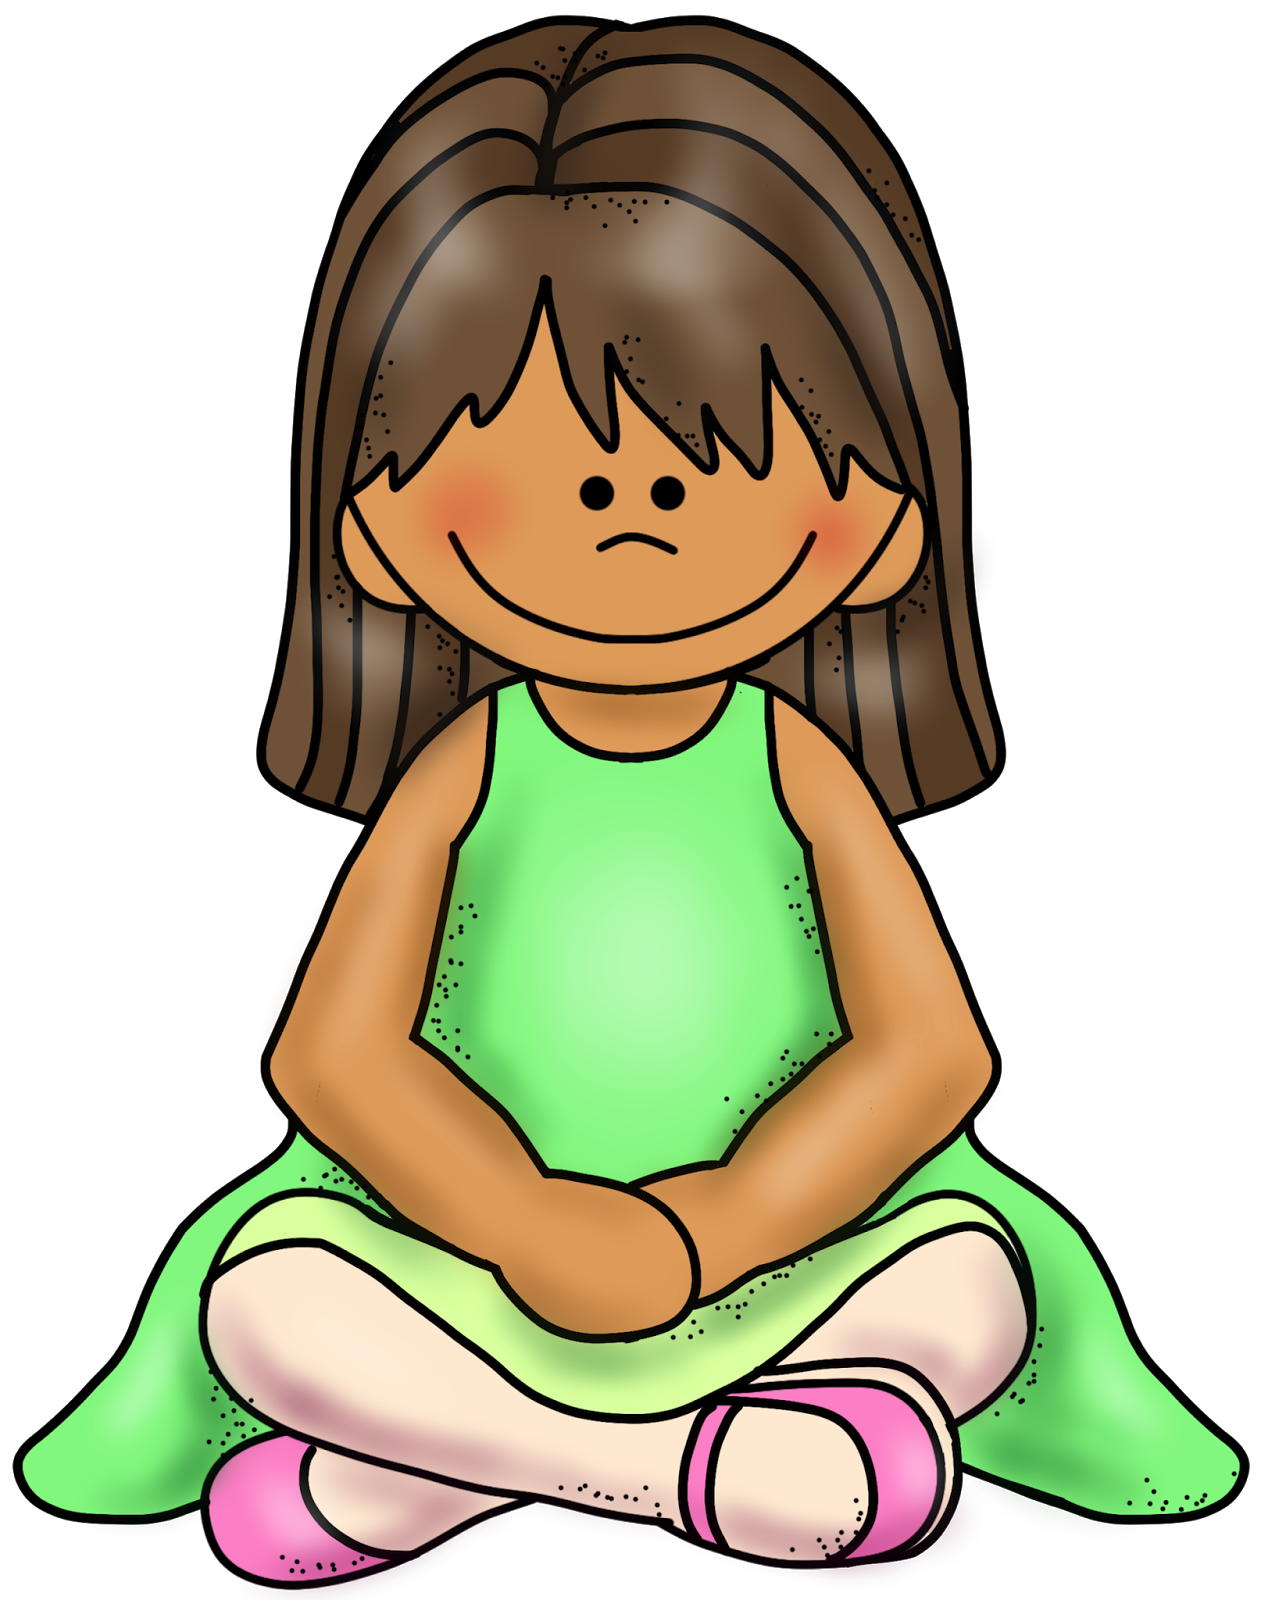 hight resolution of sitting criss cross applesauce clipart